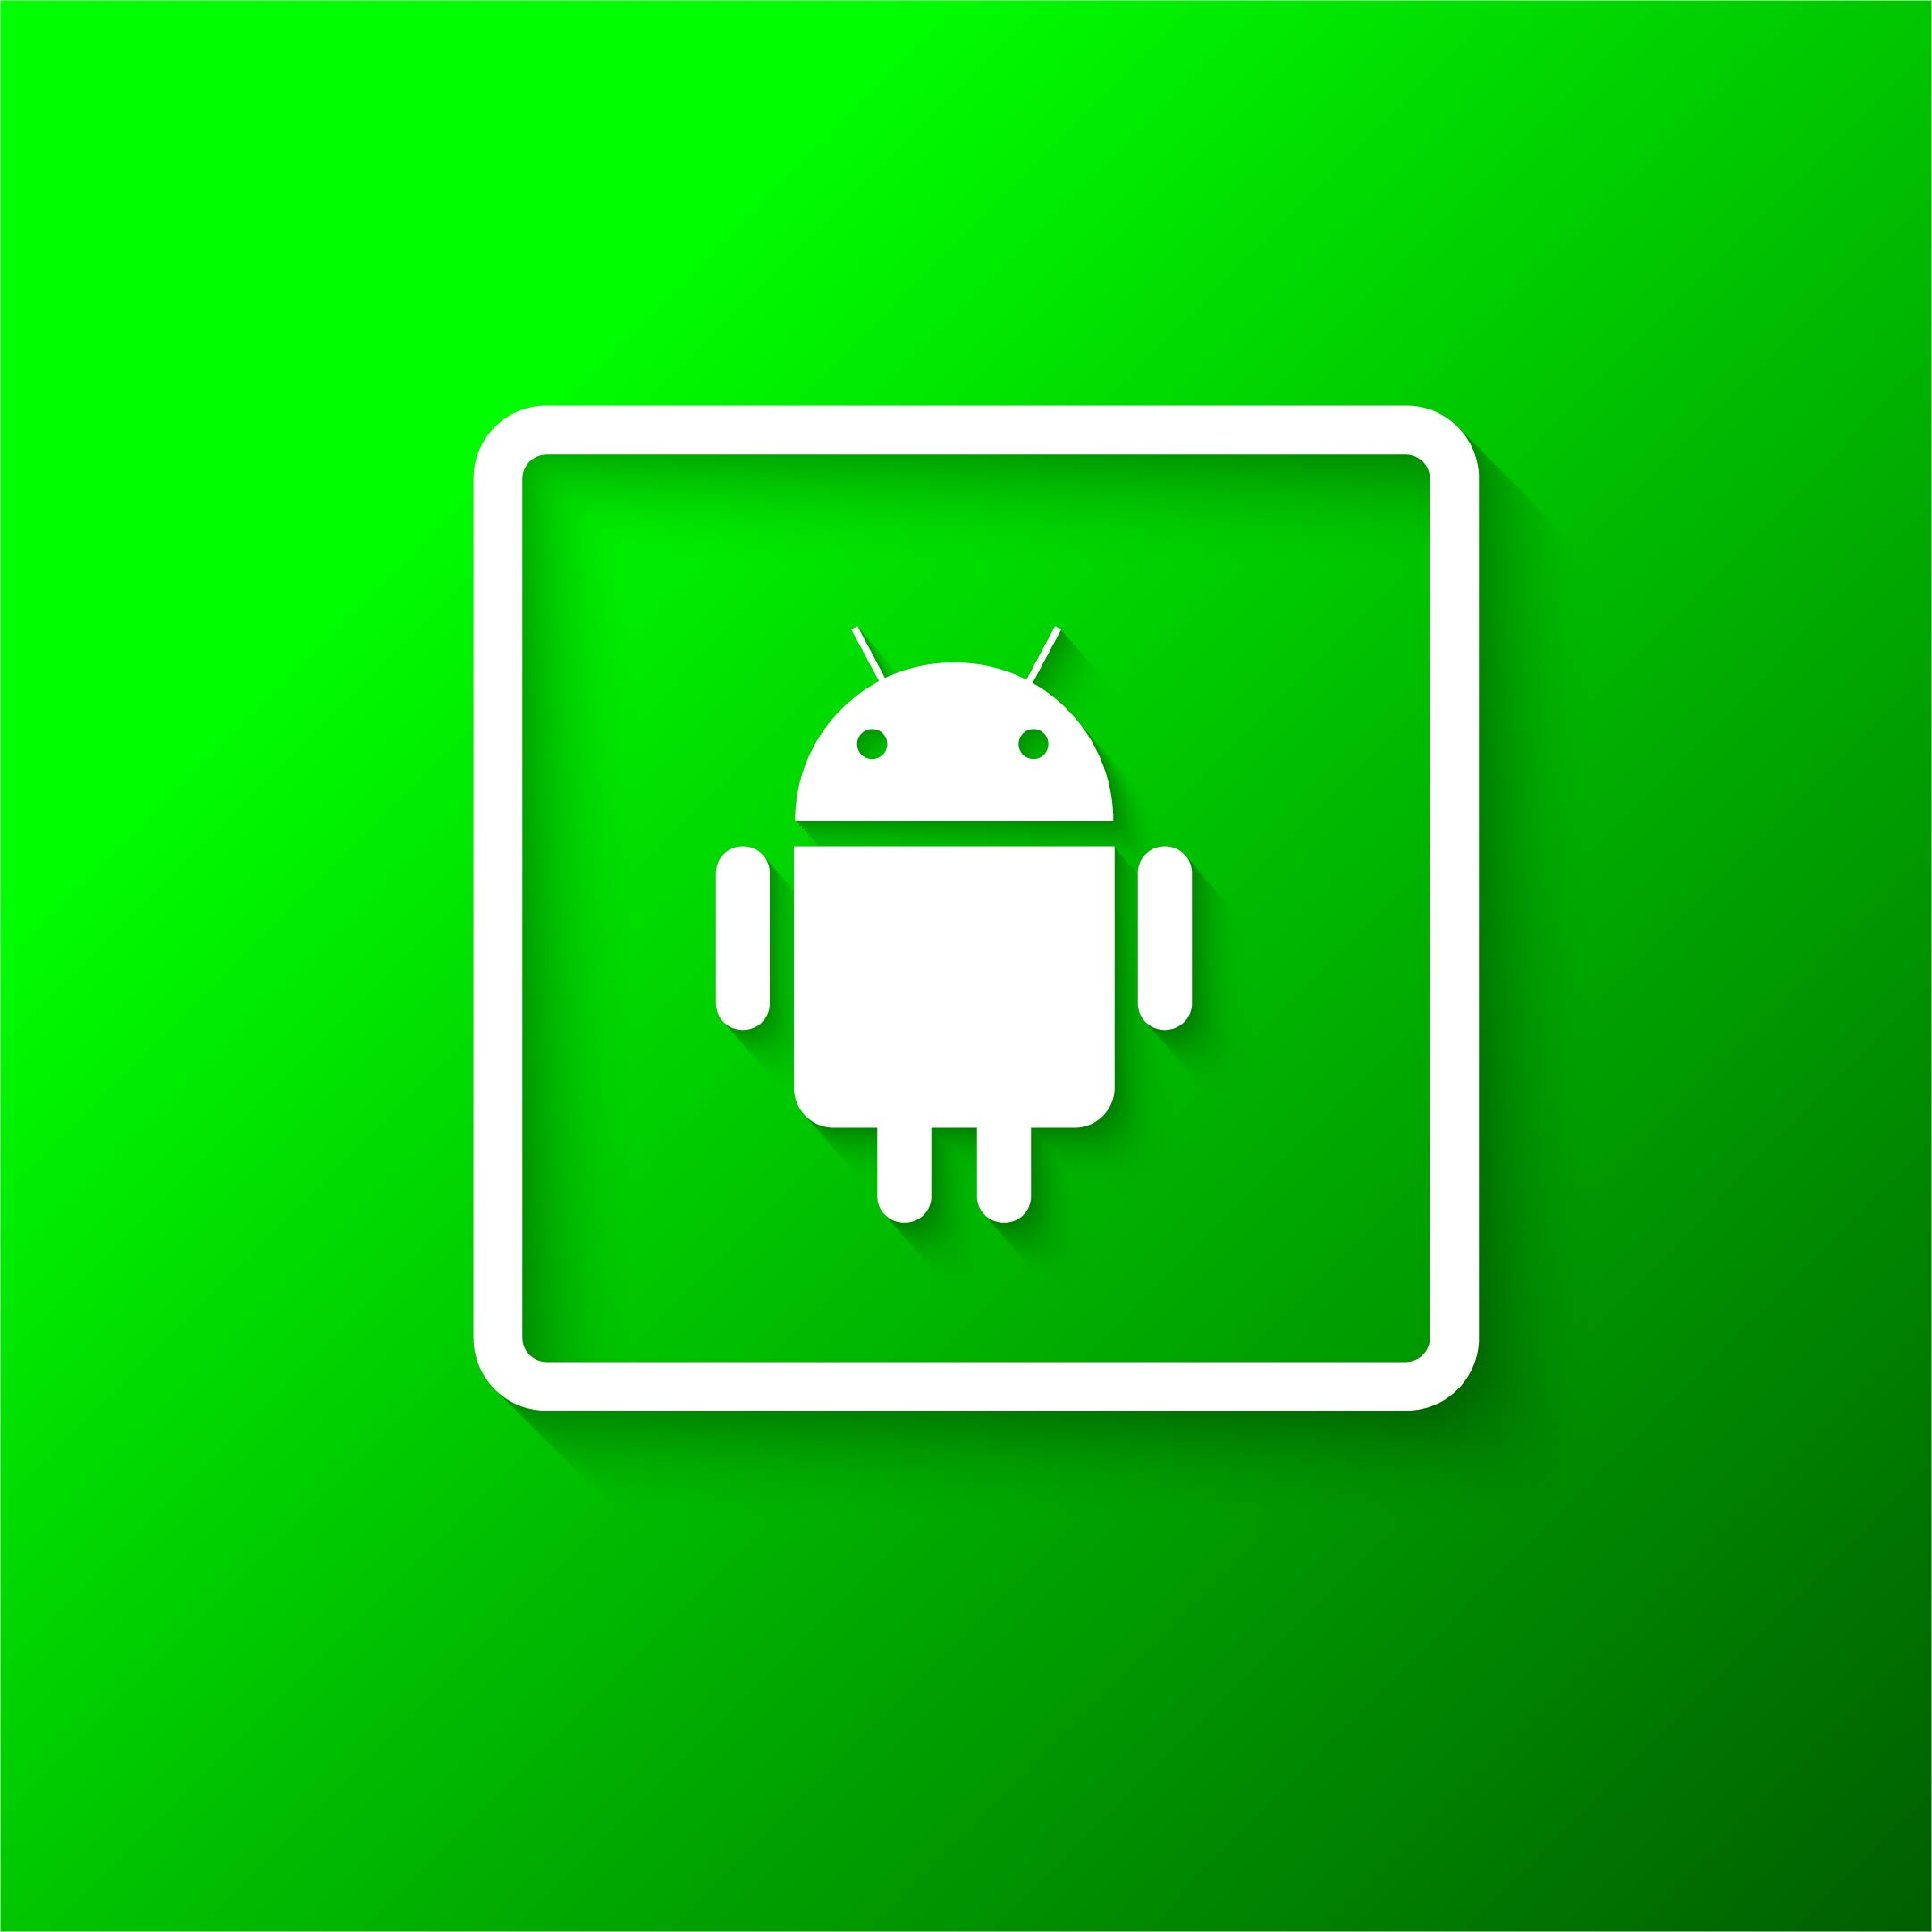 How to Open/Install APK Files on Android?